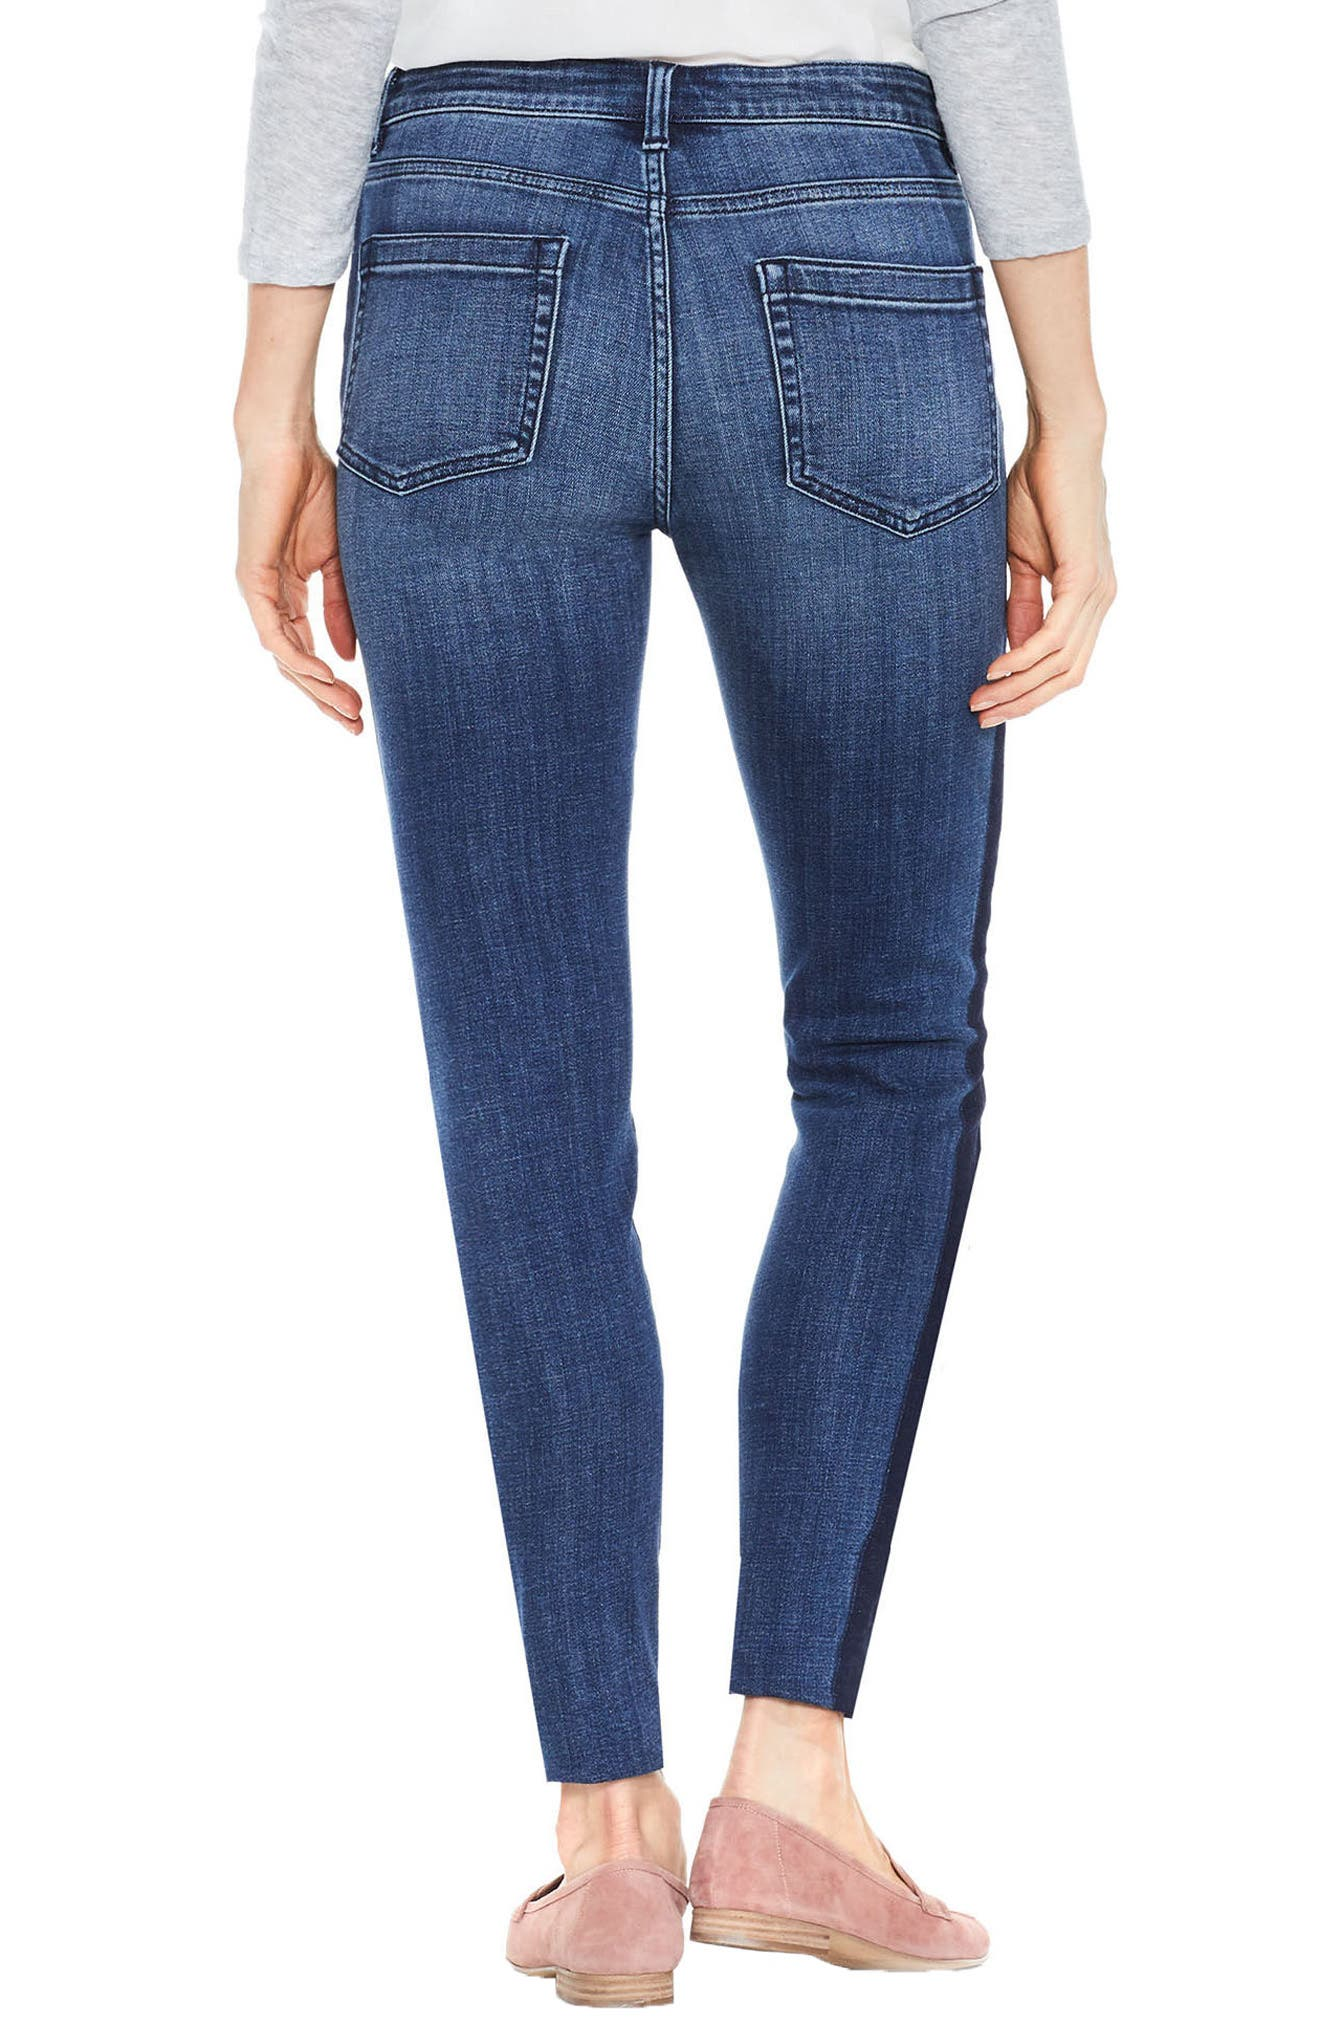 Two by Vince Camuto Two-Tone Skinny Jeans,                             Alternate thumbnail 2, color,                             INDIGO SHADOW